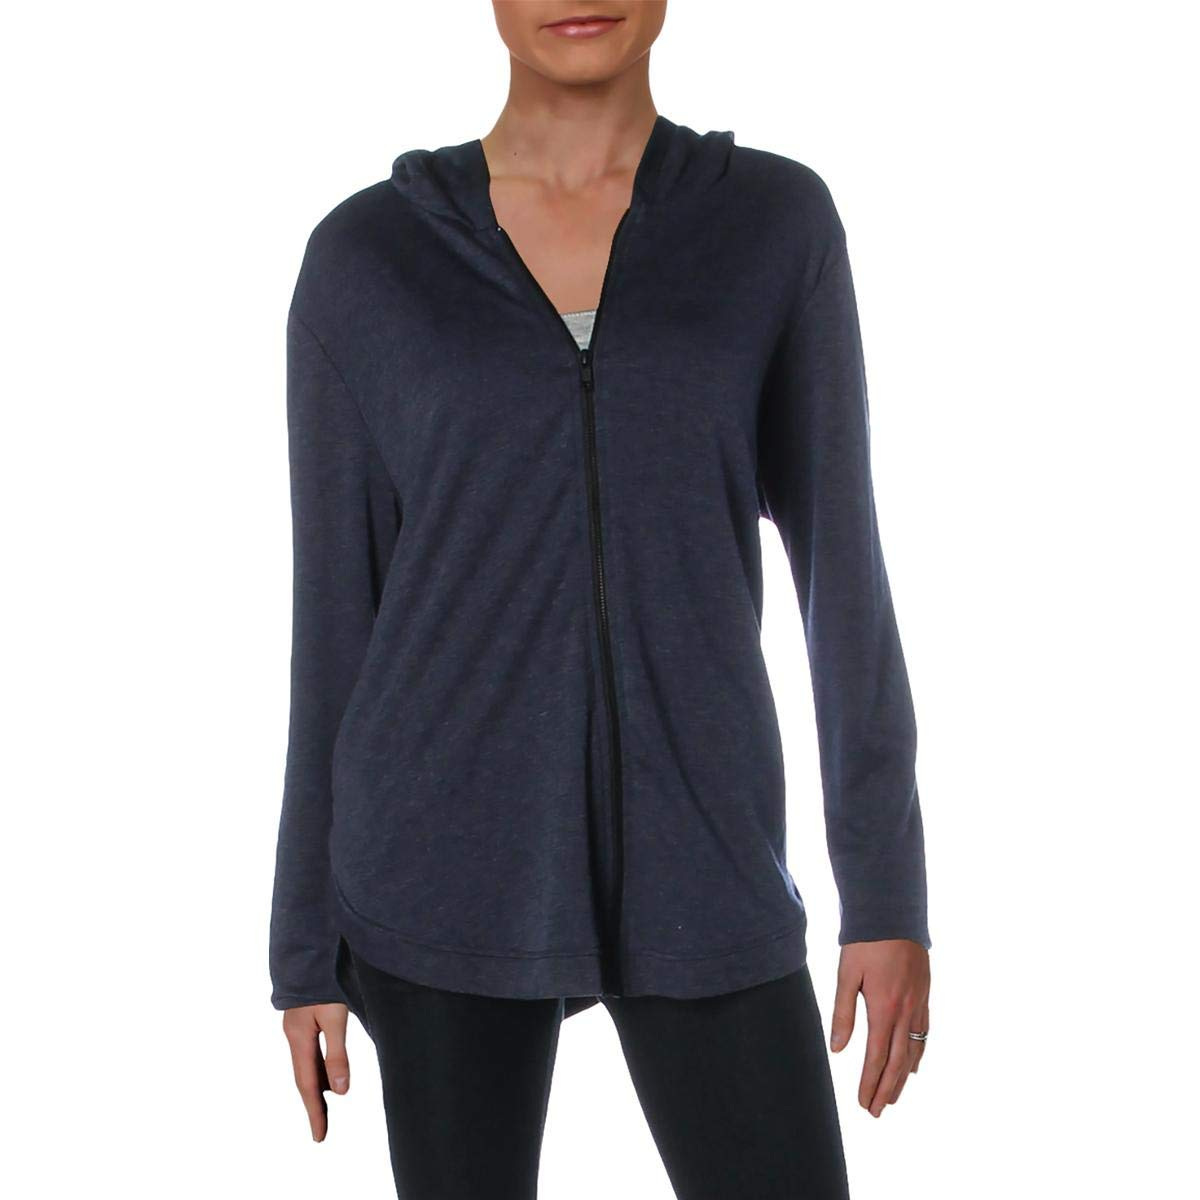 bluee Terez Womens Knit Heathered Hoodie